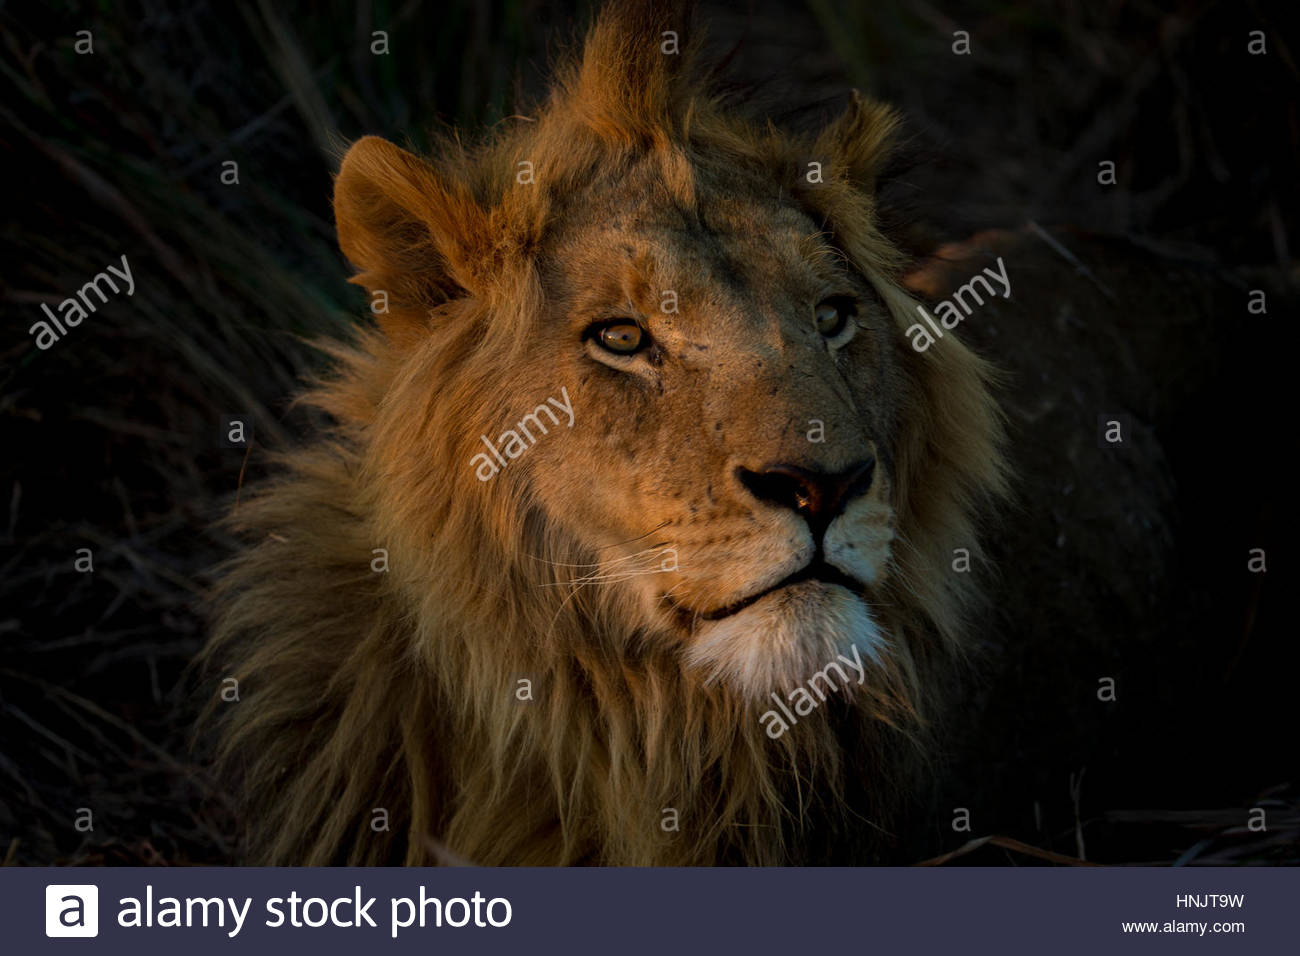 A male Lion, Panthera leo, with the light from the setting sun on his face. - Stock Image